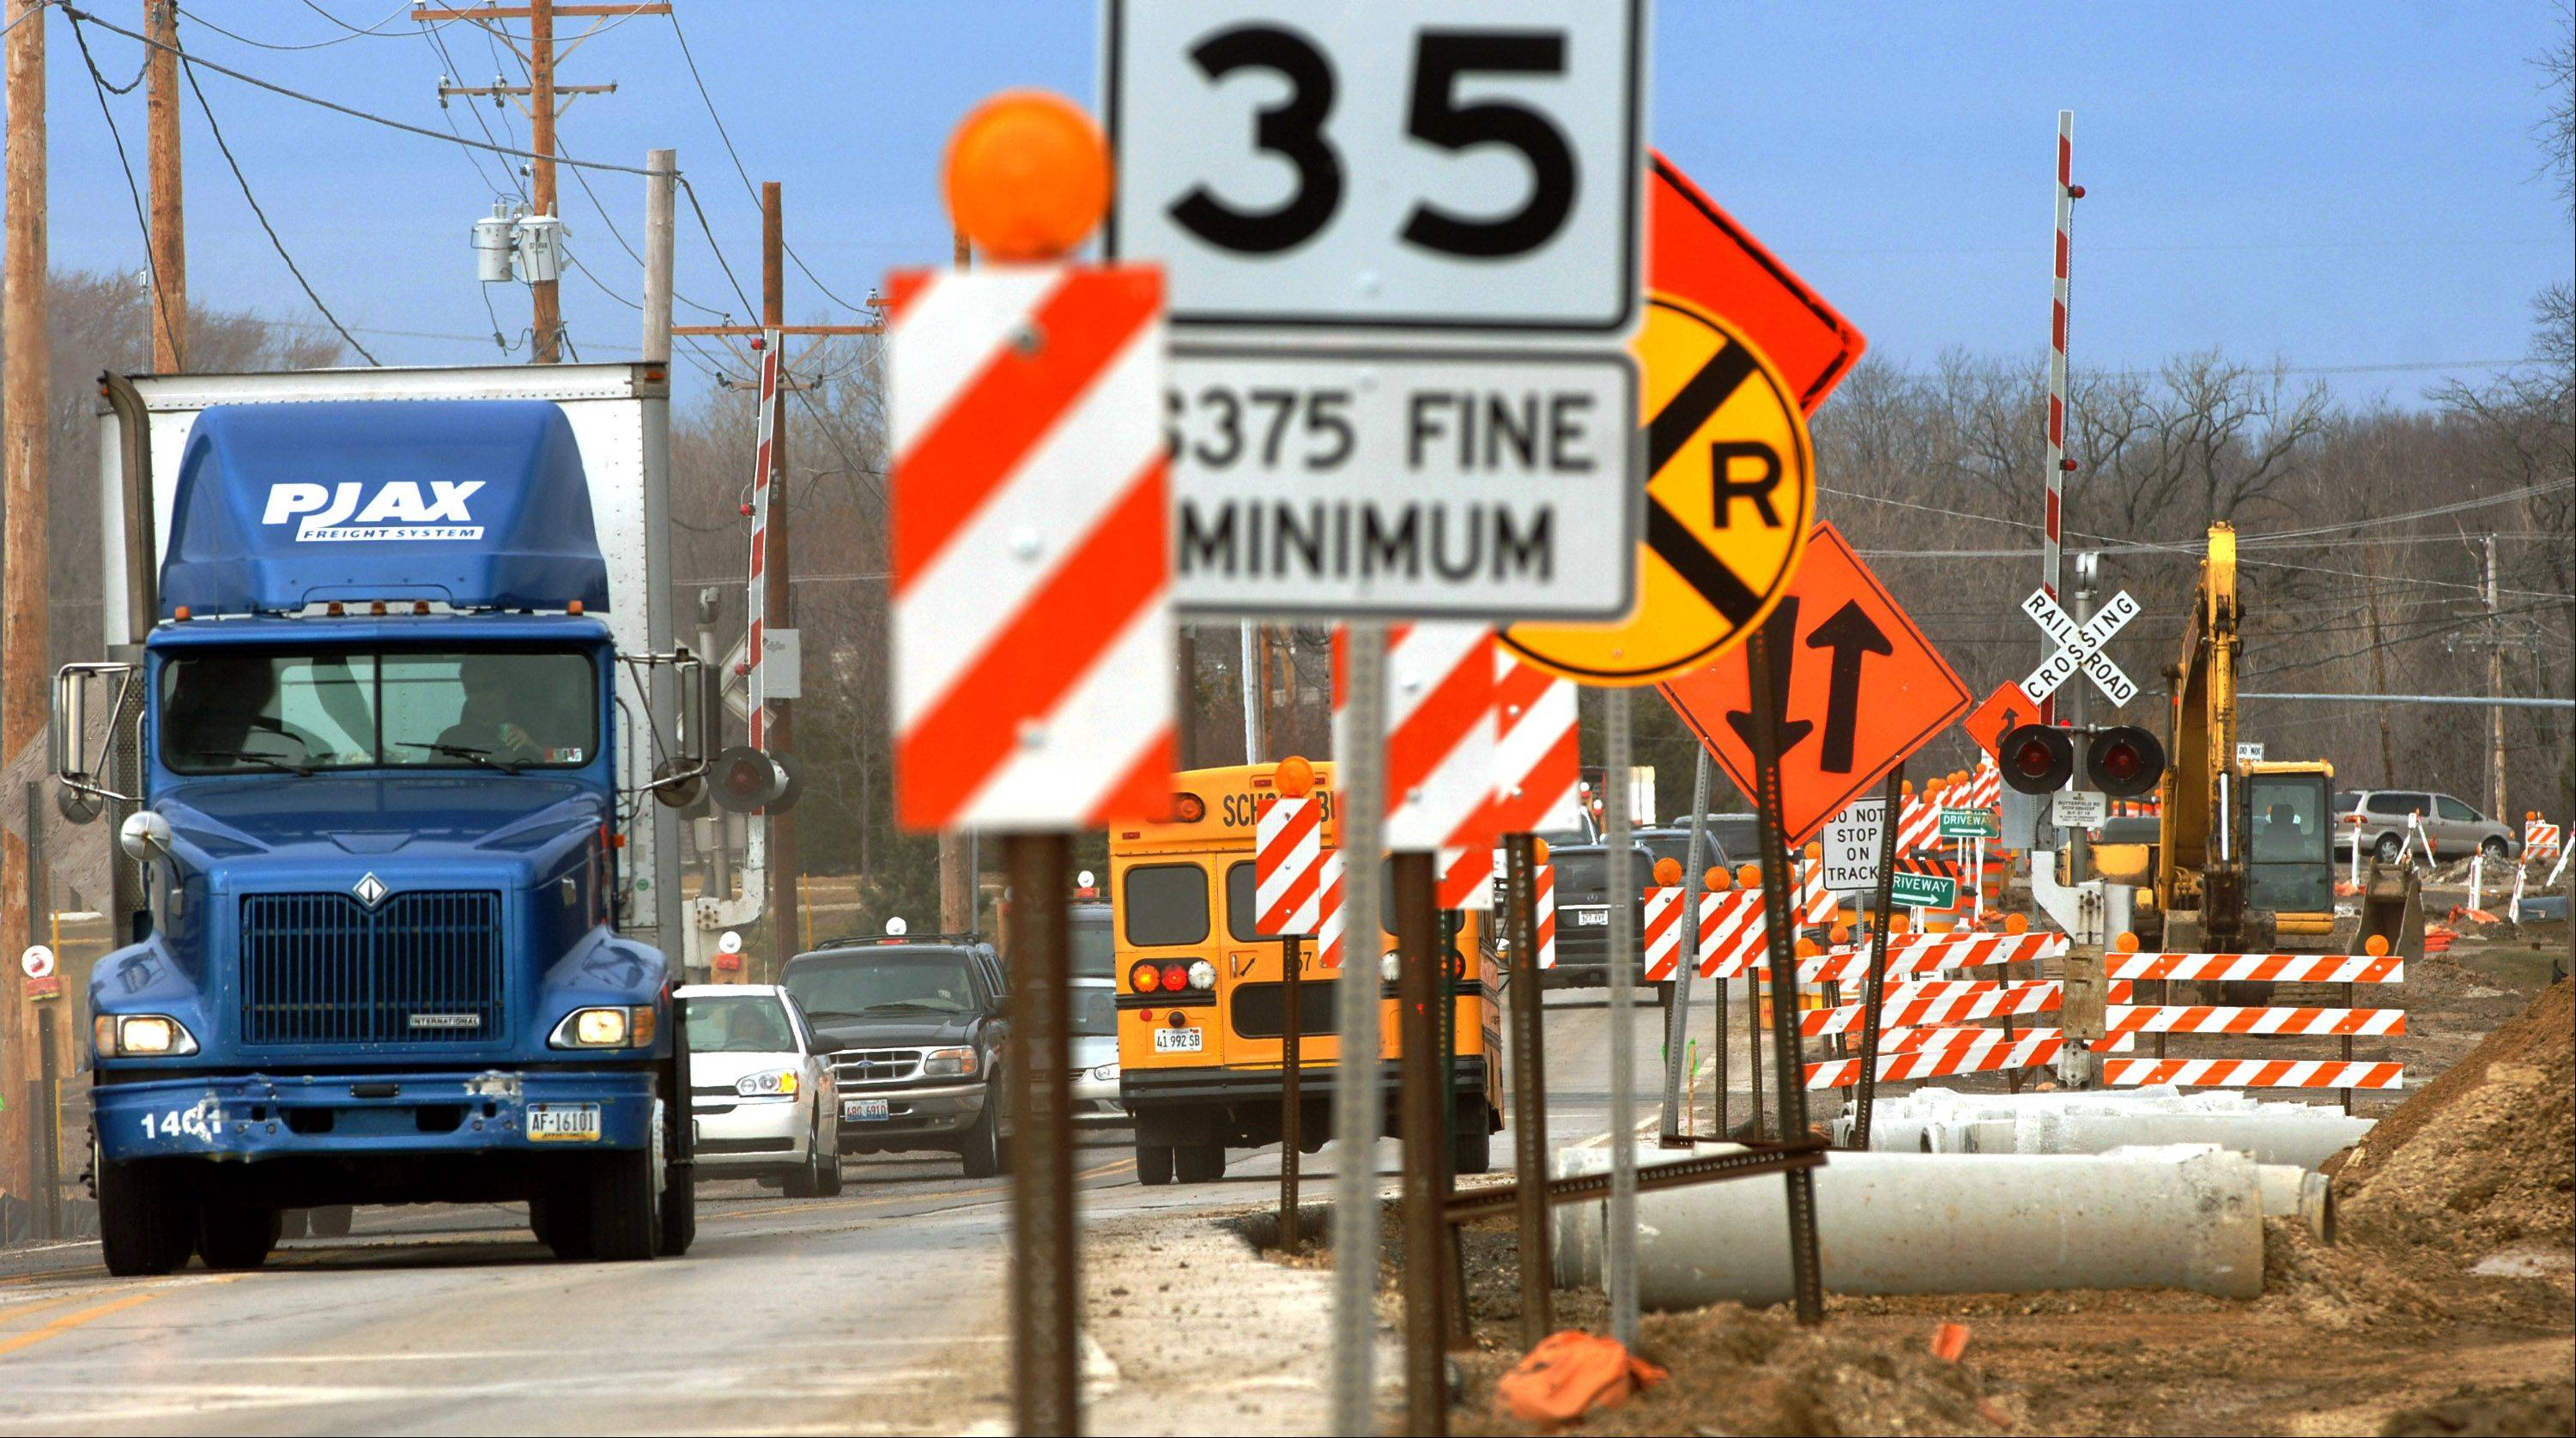 Libertyville already is gearing up for what's expected to be a huge construction season next year. In the meantime, the village also is warning drivers to avoid portions of Lake Street beginning June 1 because of planned resurfacing work.